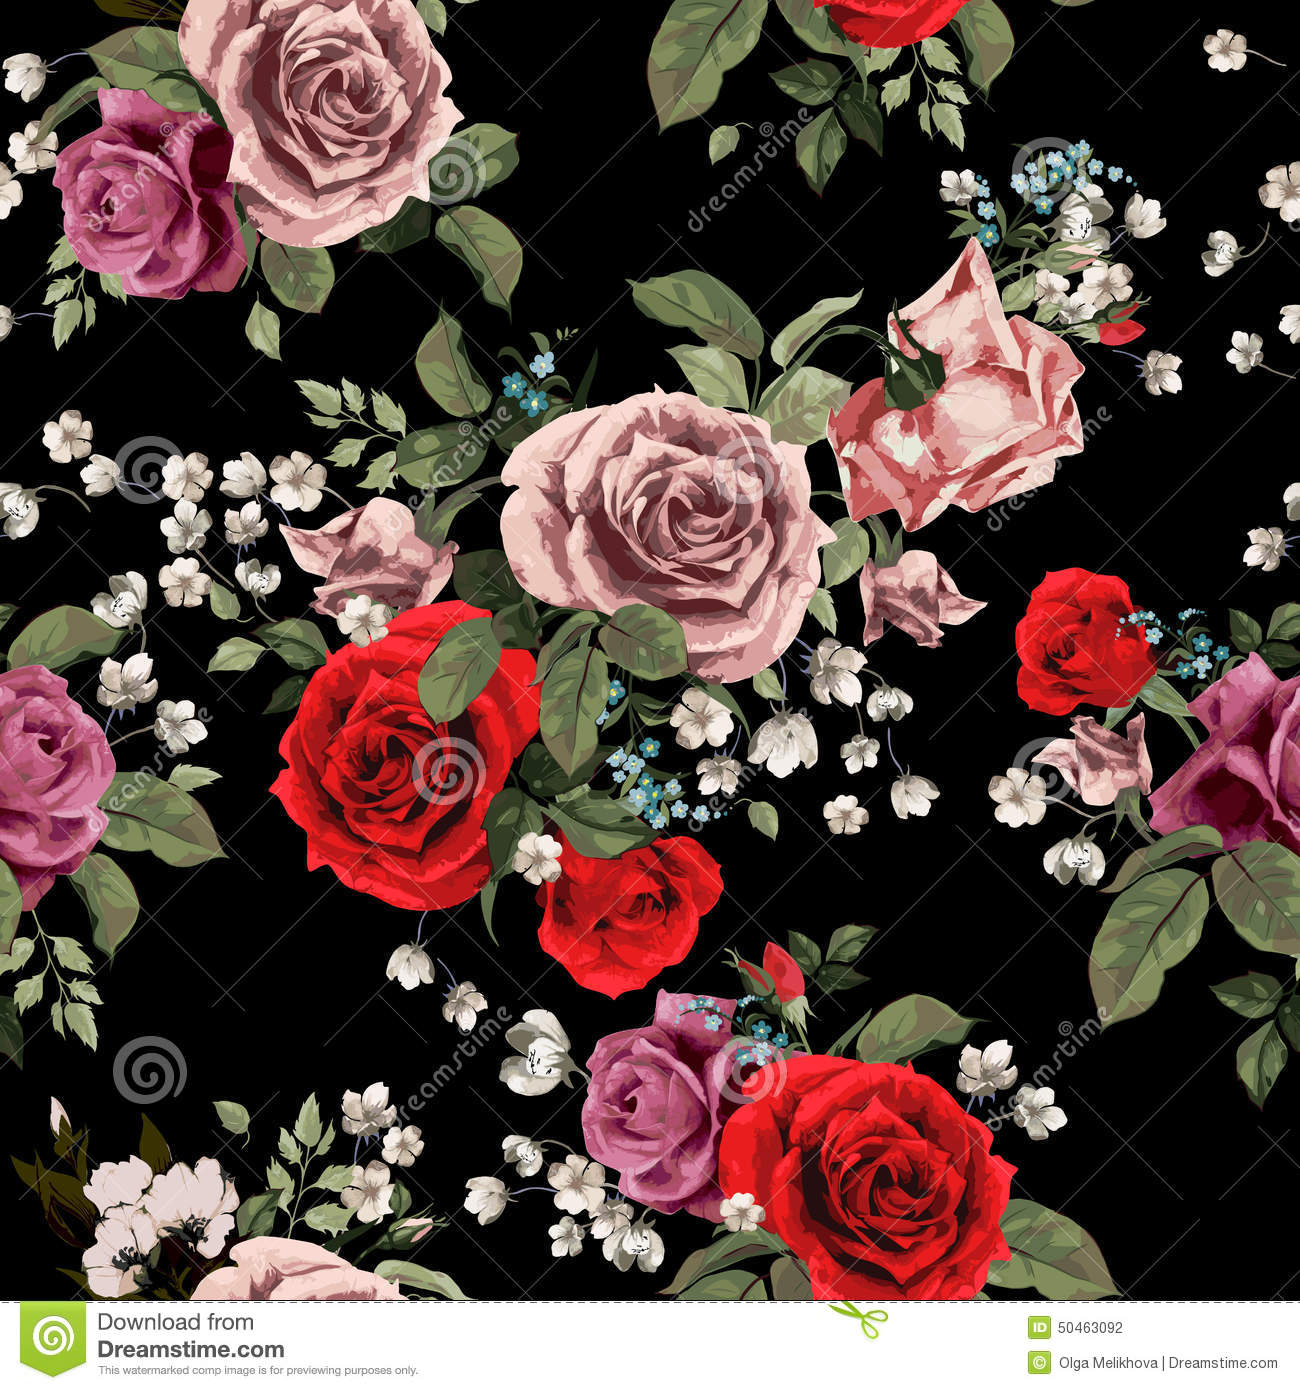 Seamless Floral Pattern With Red And Pink Roses On Black